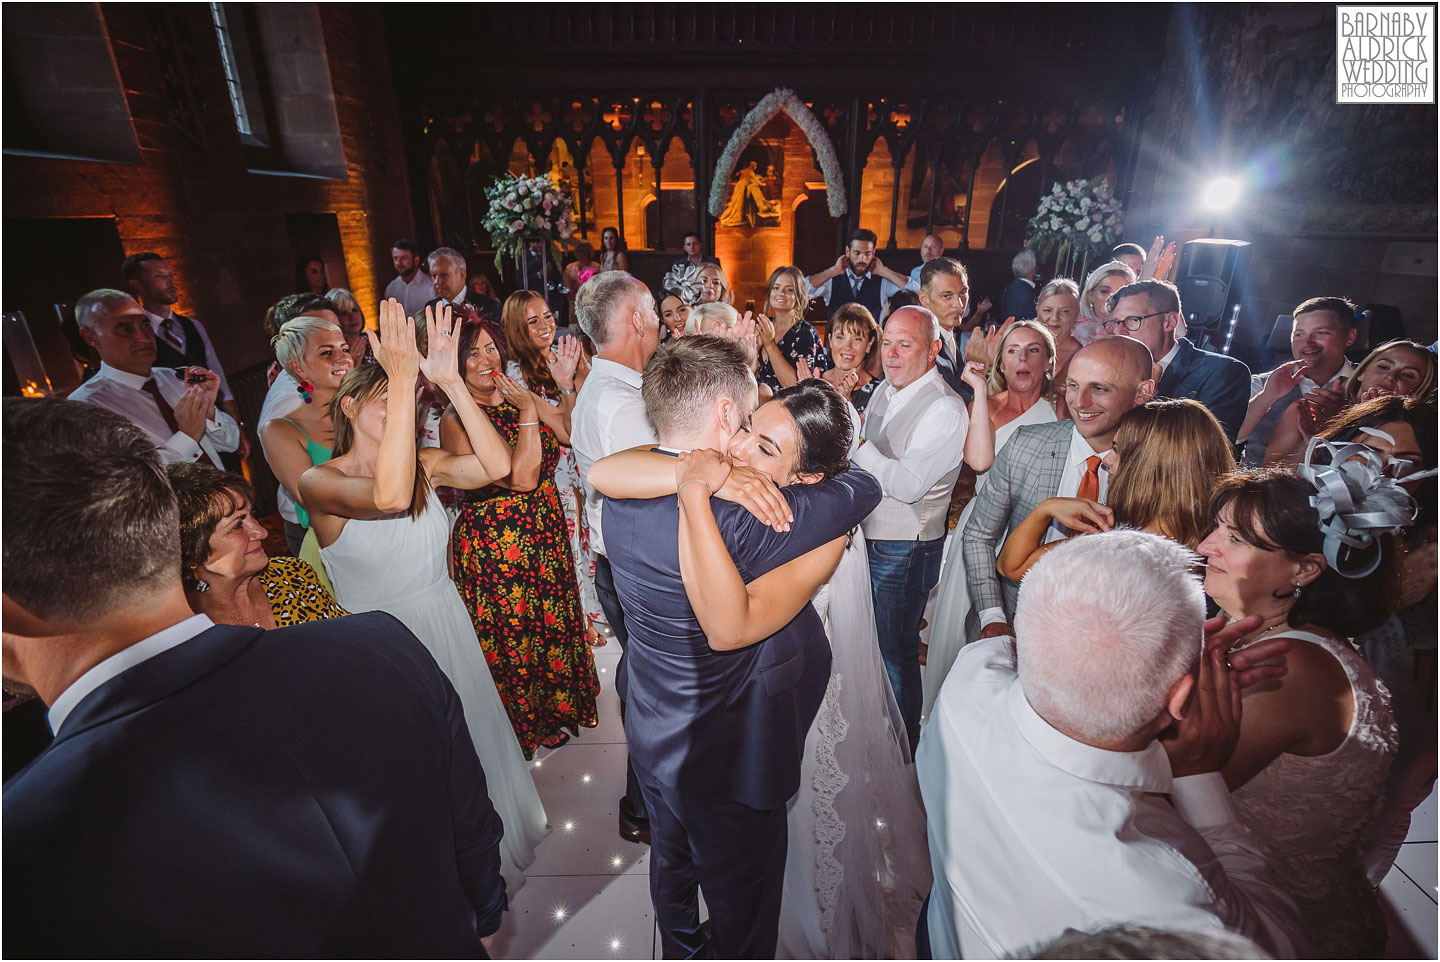 Dancing to The Rush wedding band at Peckforton Castle in Cheshire, Cheshire Wedding Photography at Peckforton Castle, Peckforton Castle Wedding, UK Castle Wedding